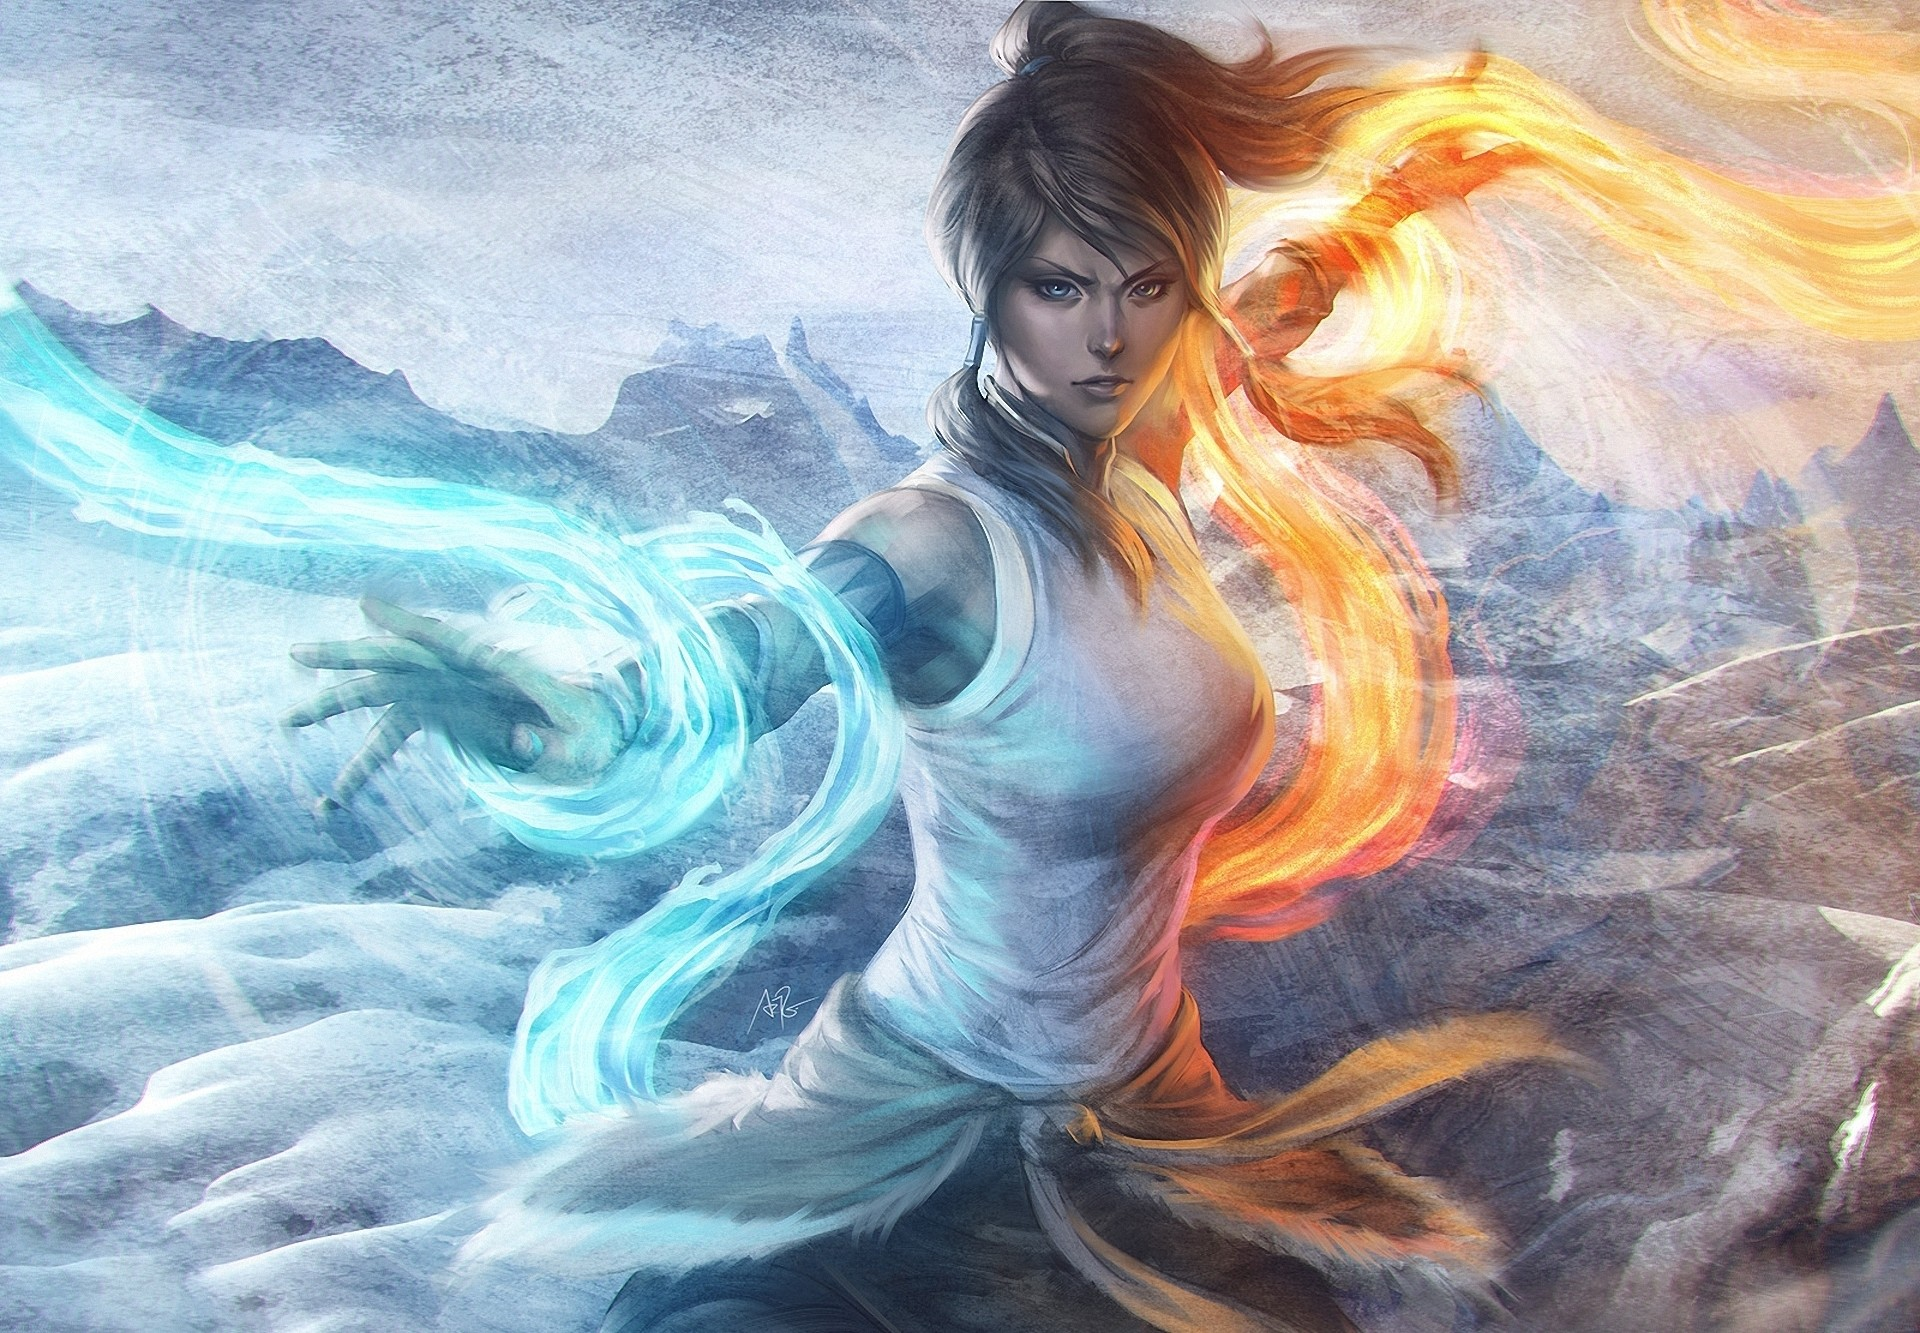 1920x1333 Anime - Avatar: The Legend Of Korra Korra (The Legend Of Korra) Wallpaper